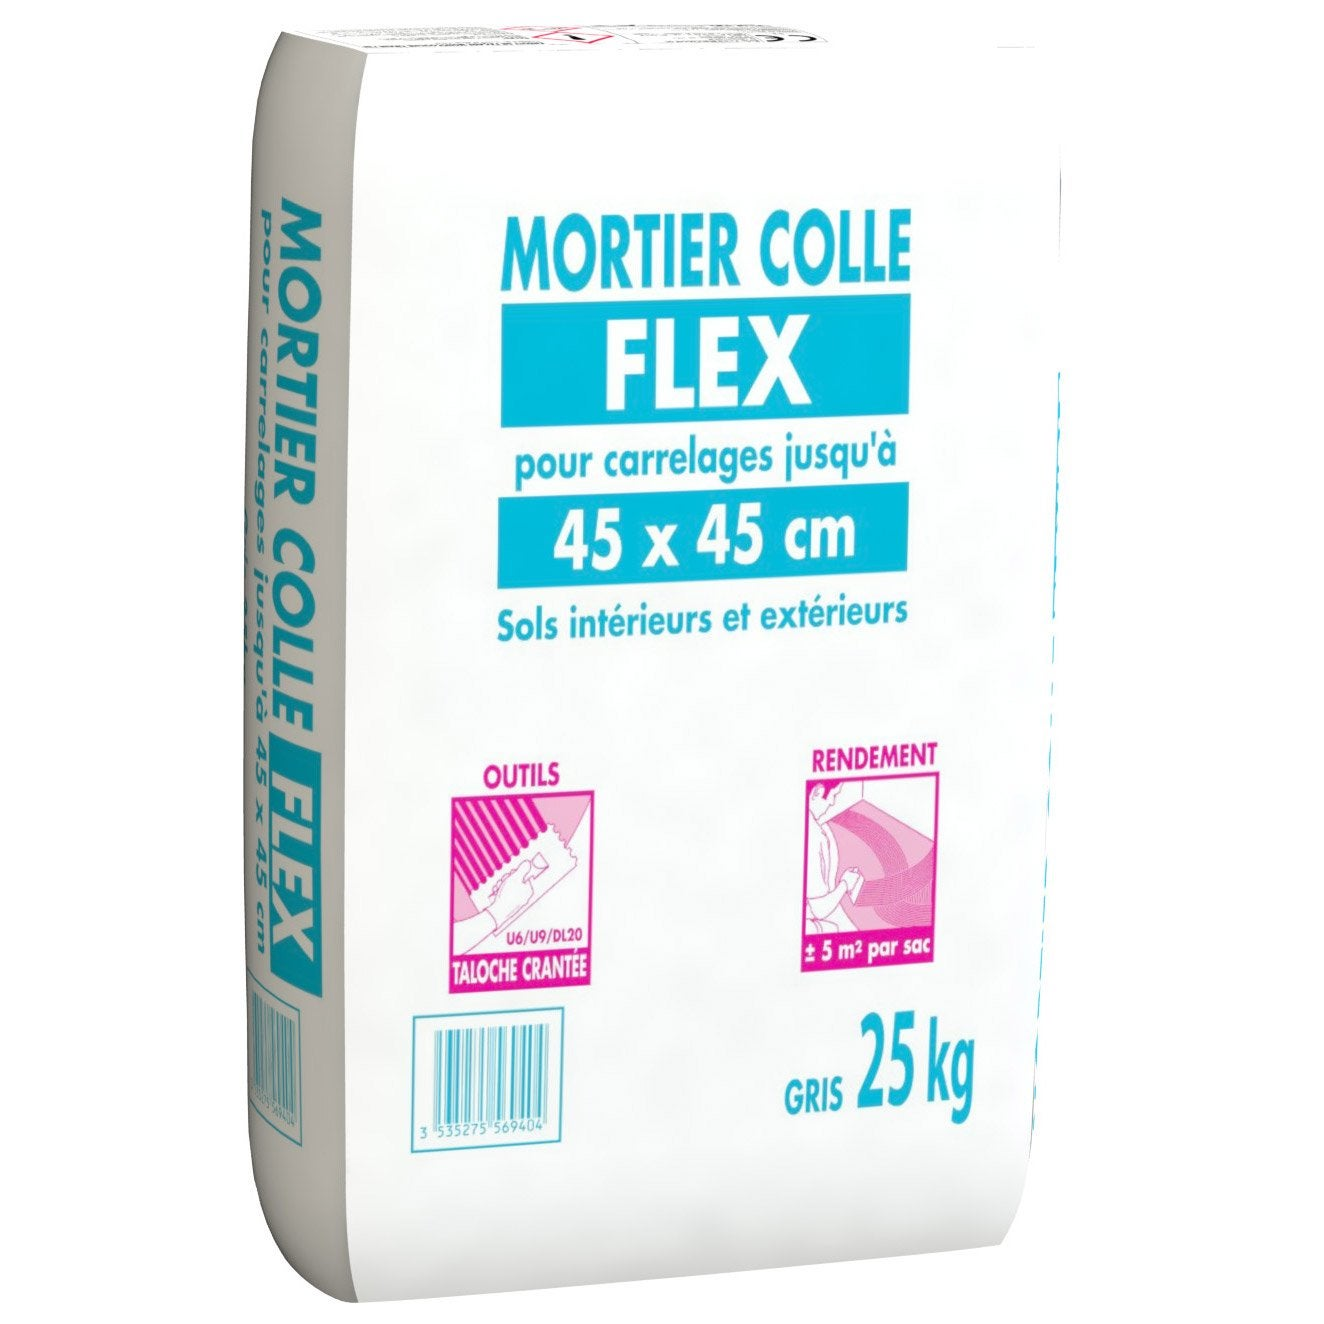 Colle pour carrelage sol 28 images mortier colle sp for Colle carrelage